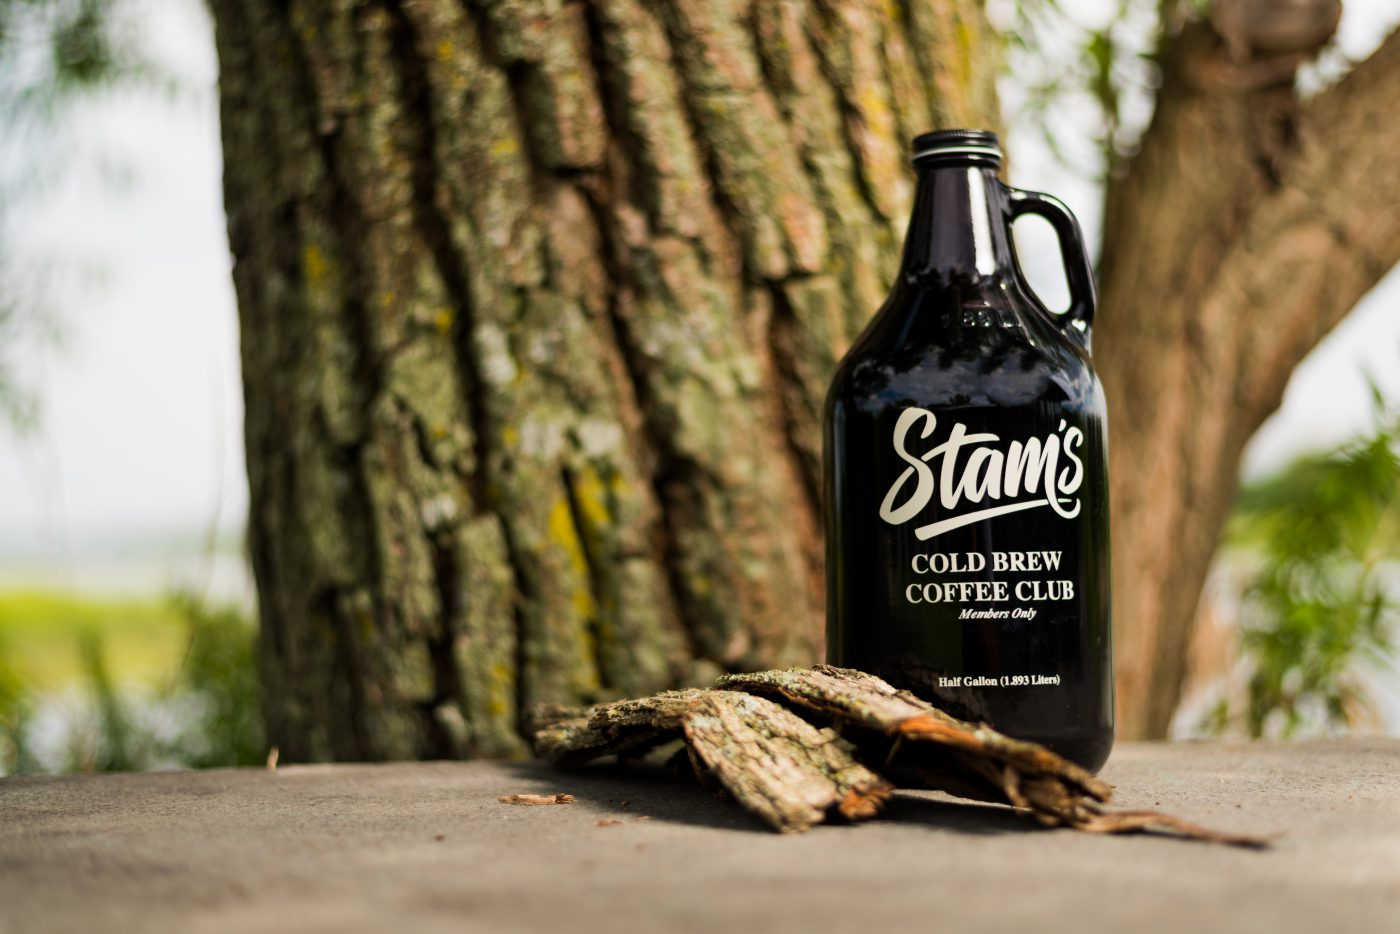 Stam's Cold Brew